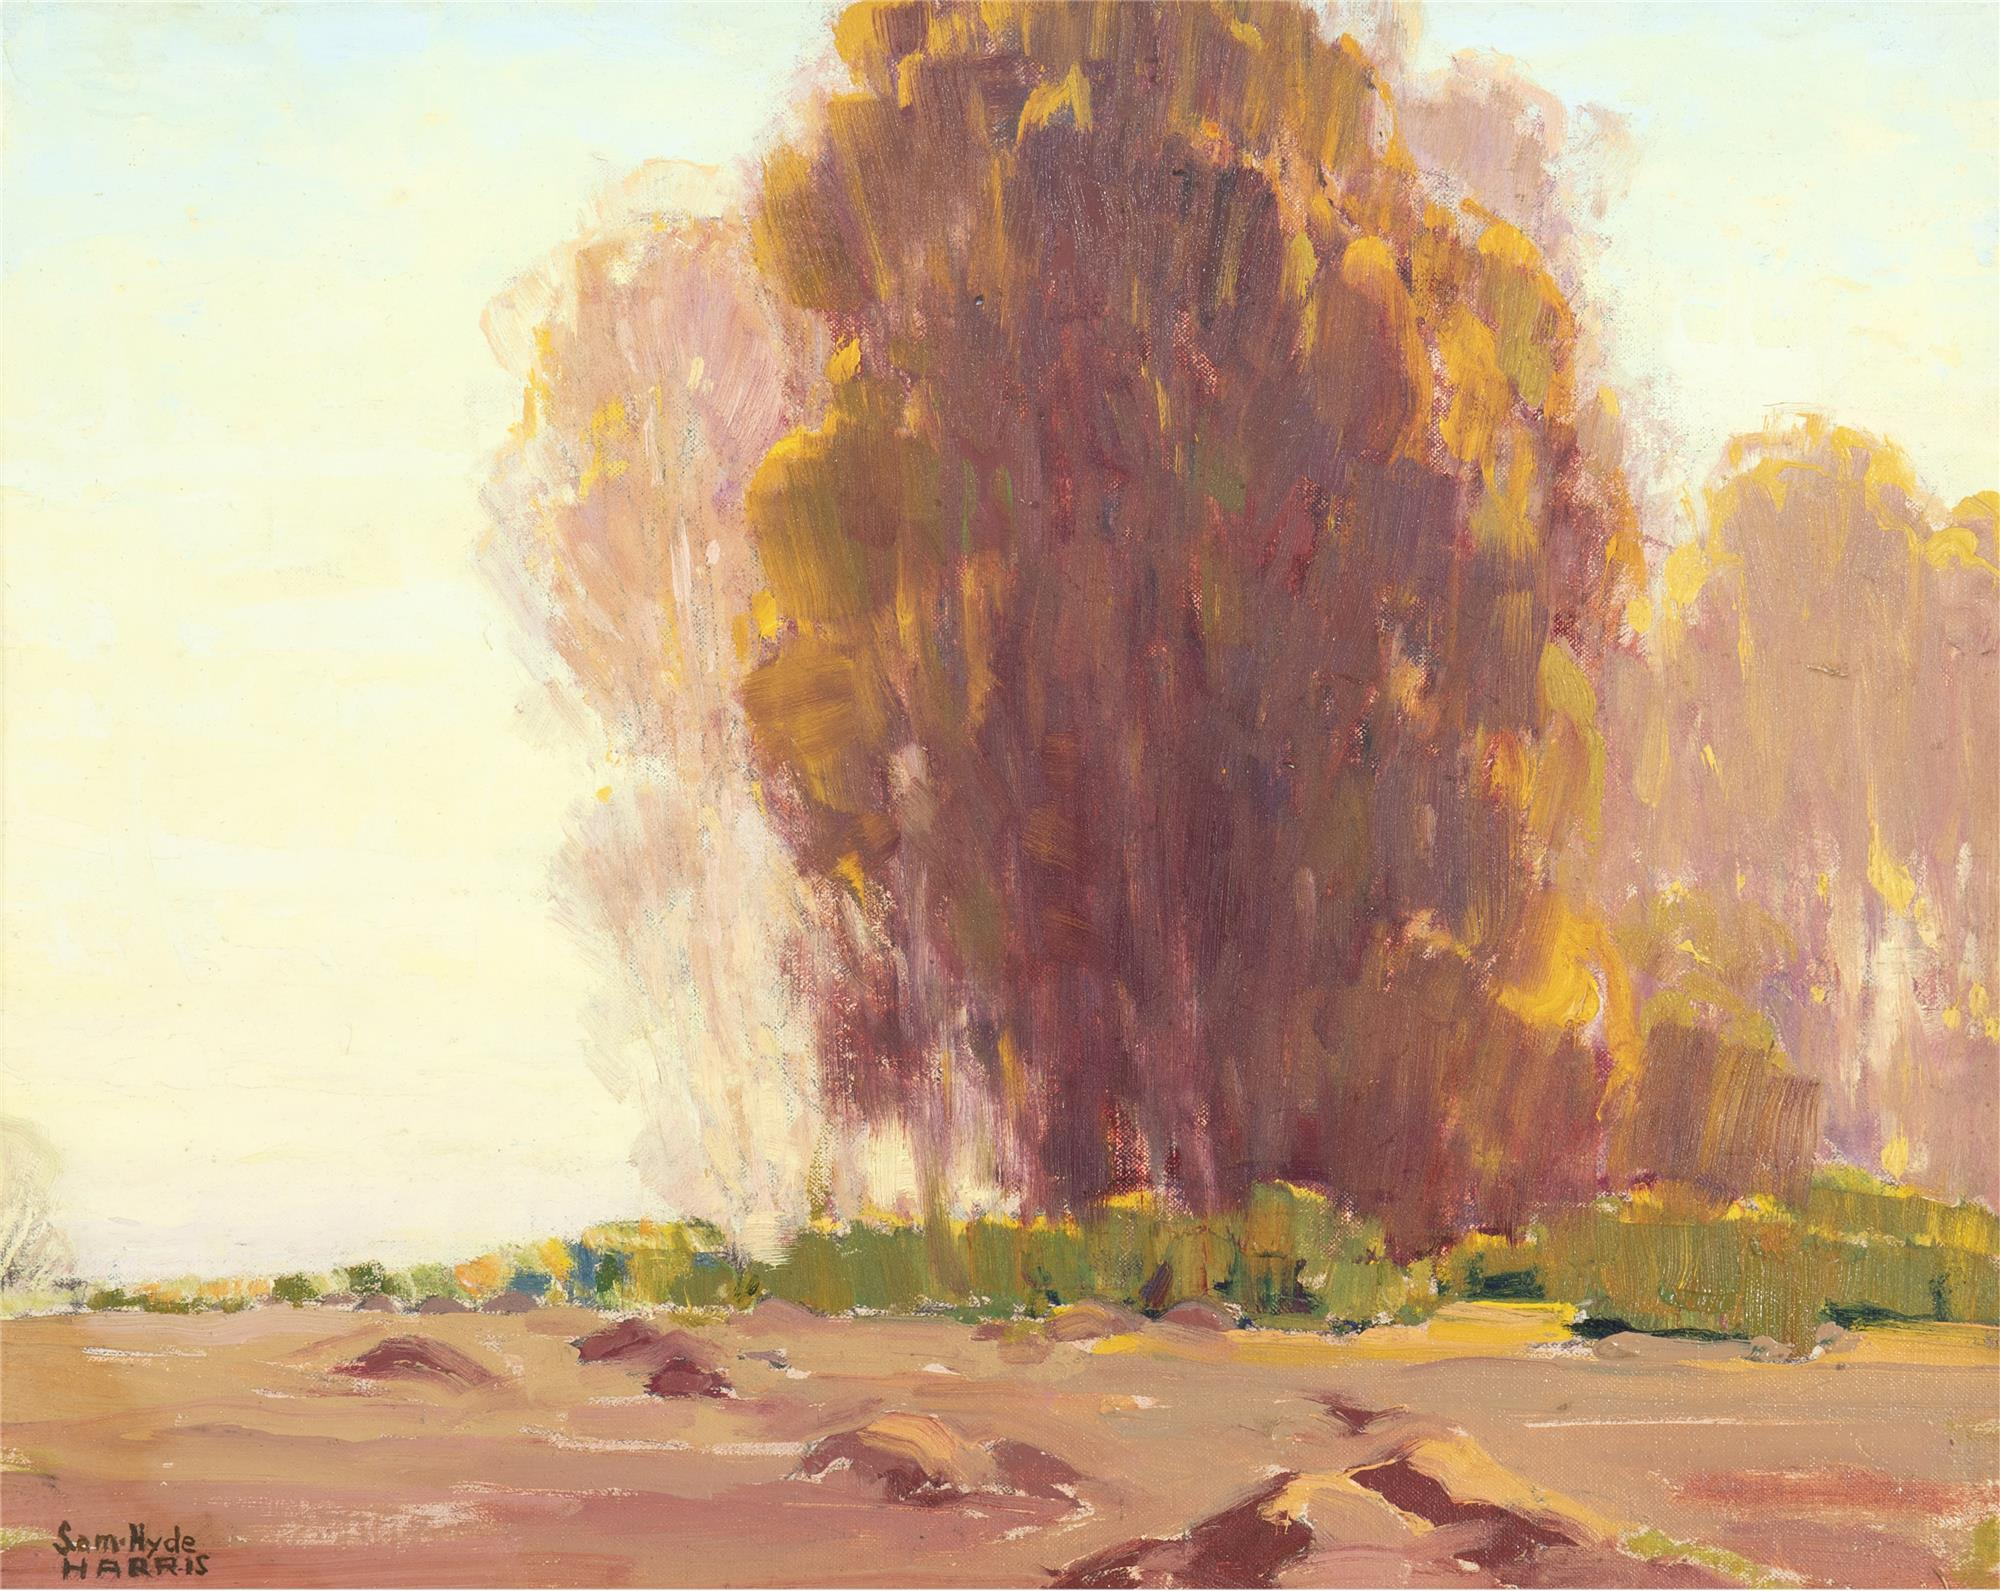 """Sam Hyde Harris, (1889-1977, Alhambra, CA), Tree in a landscape, Oil on canvas laid to board, 16"""" H x 20"""" W"""